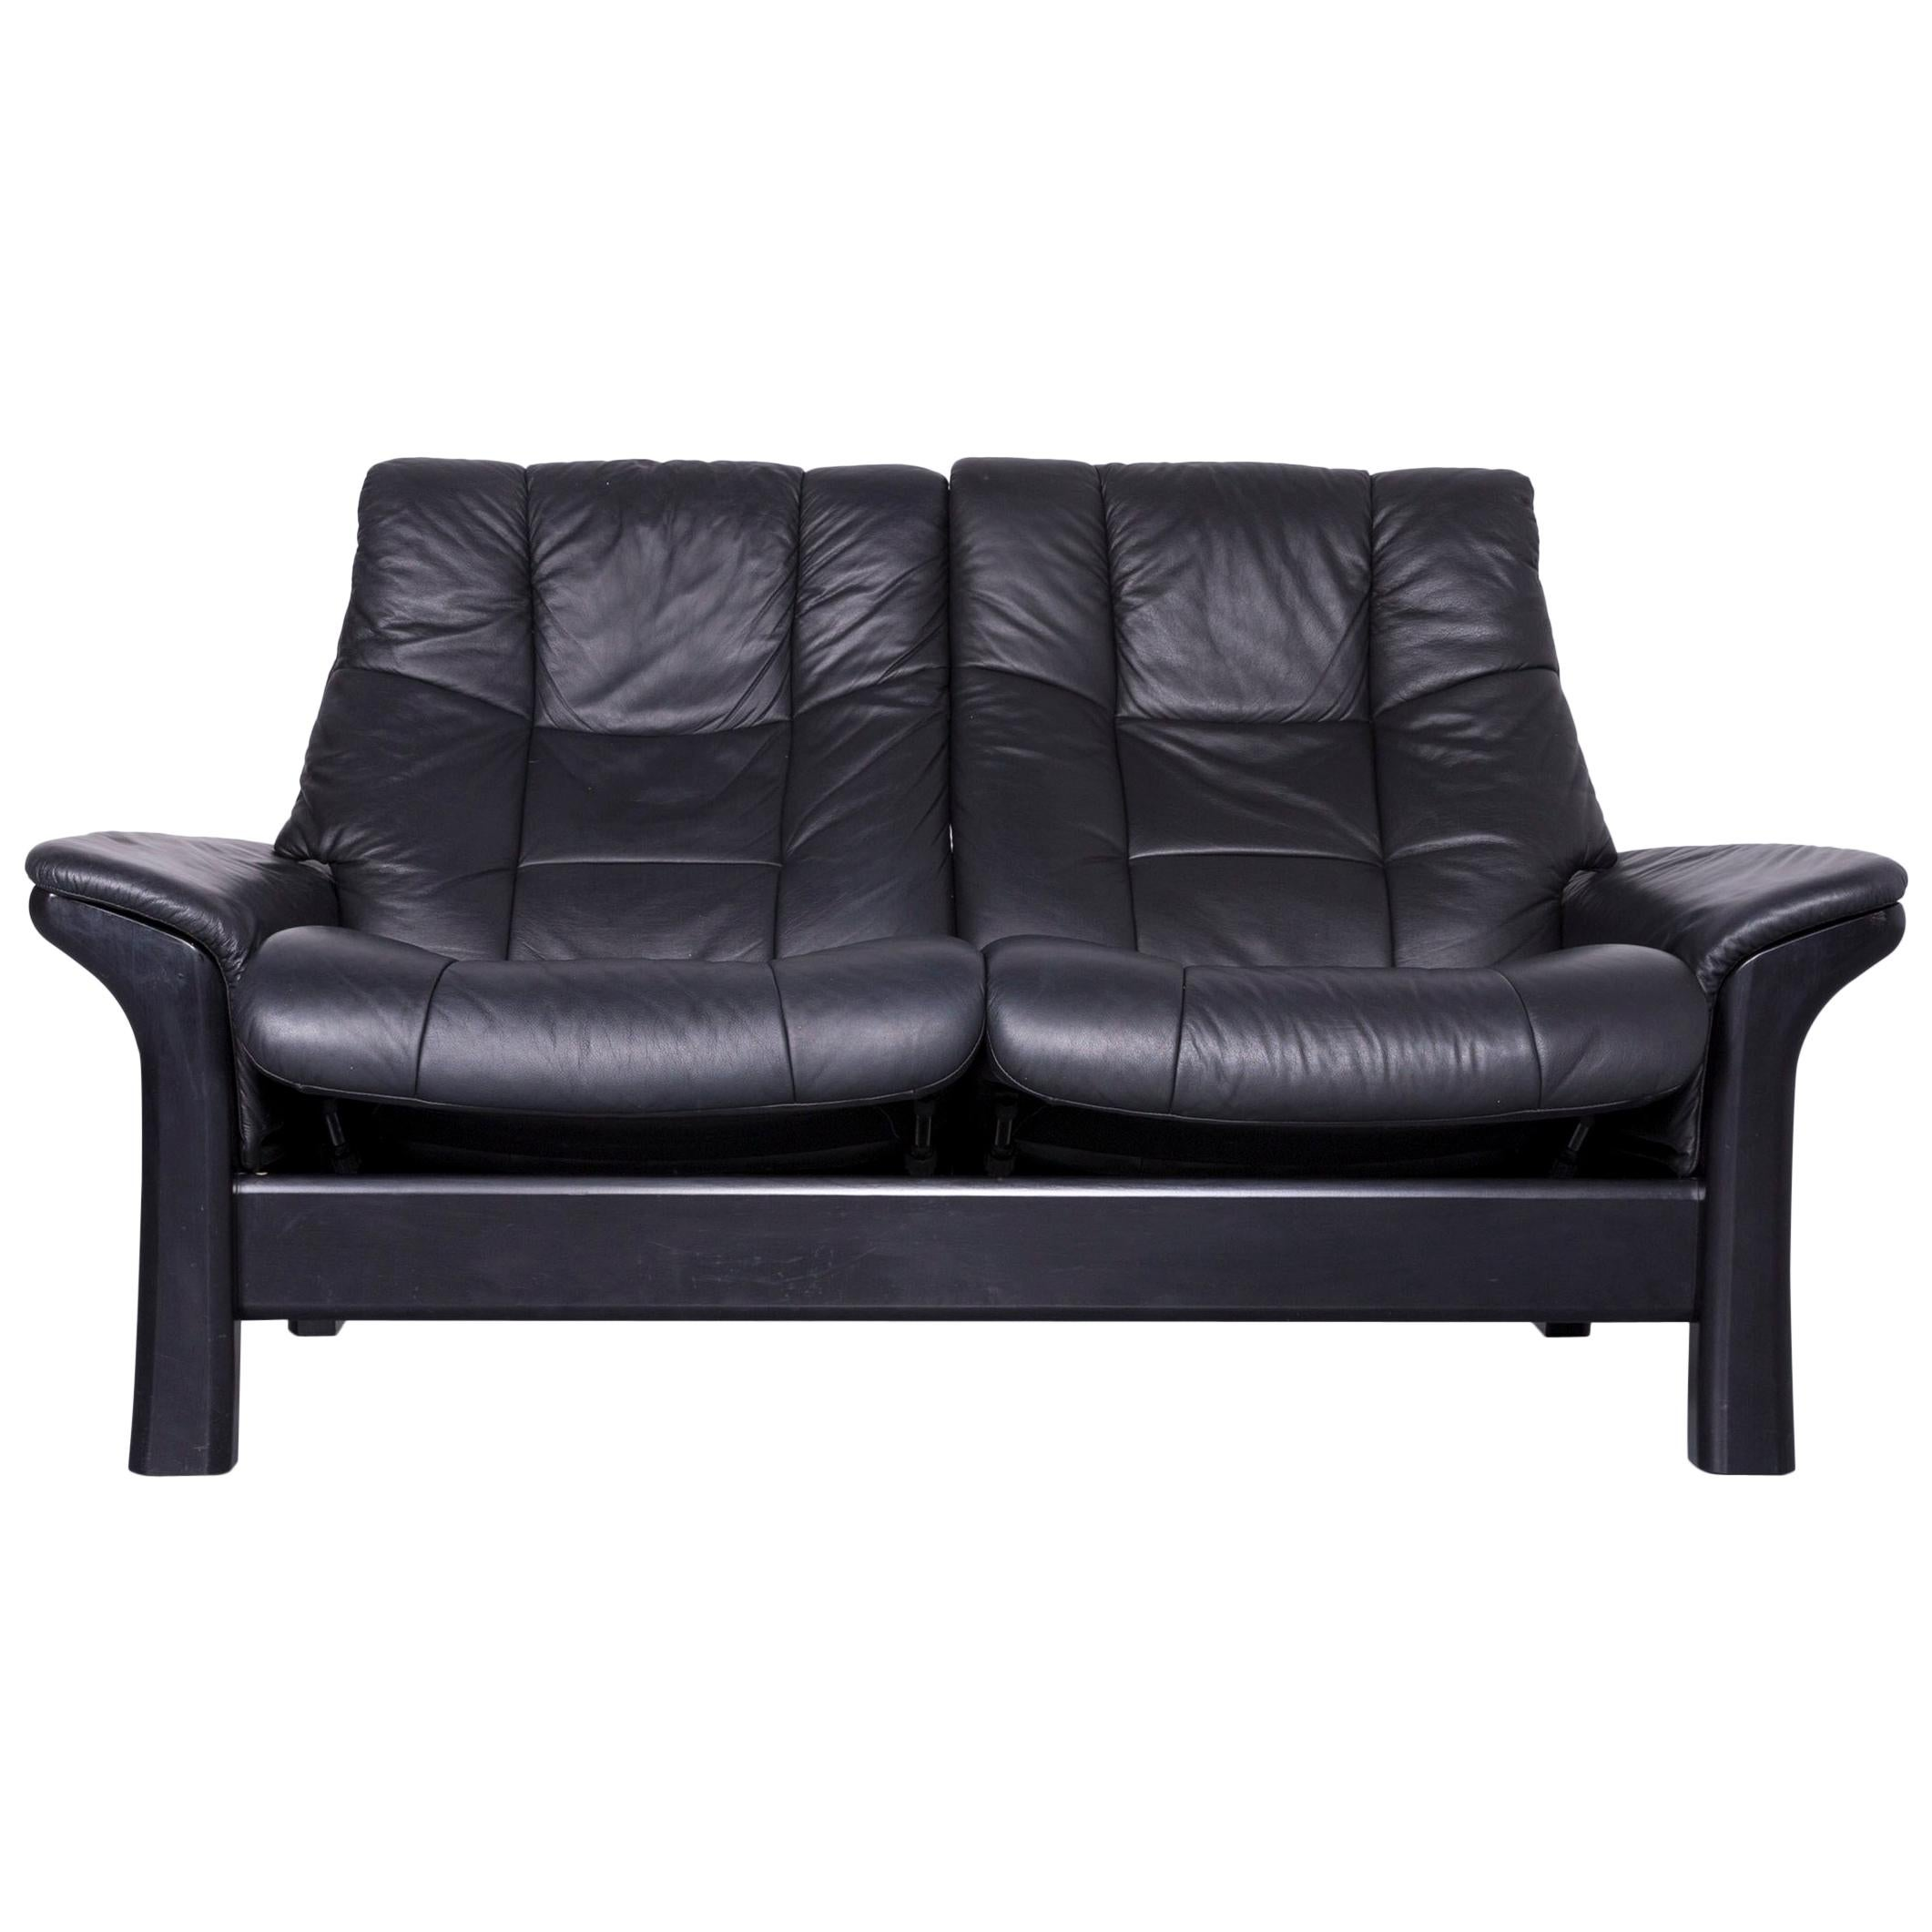 Stressless Buckingham Two Seat Sofa Black Leather Couch With Function For  Sale